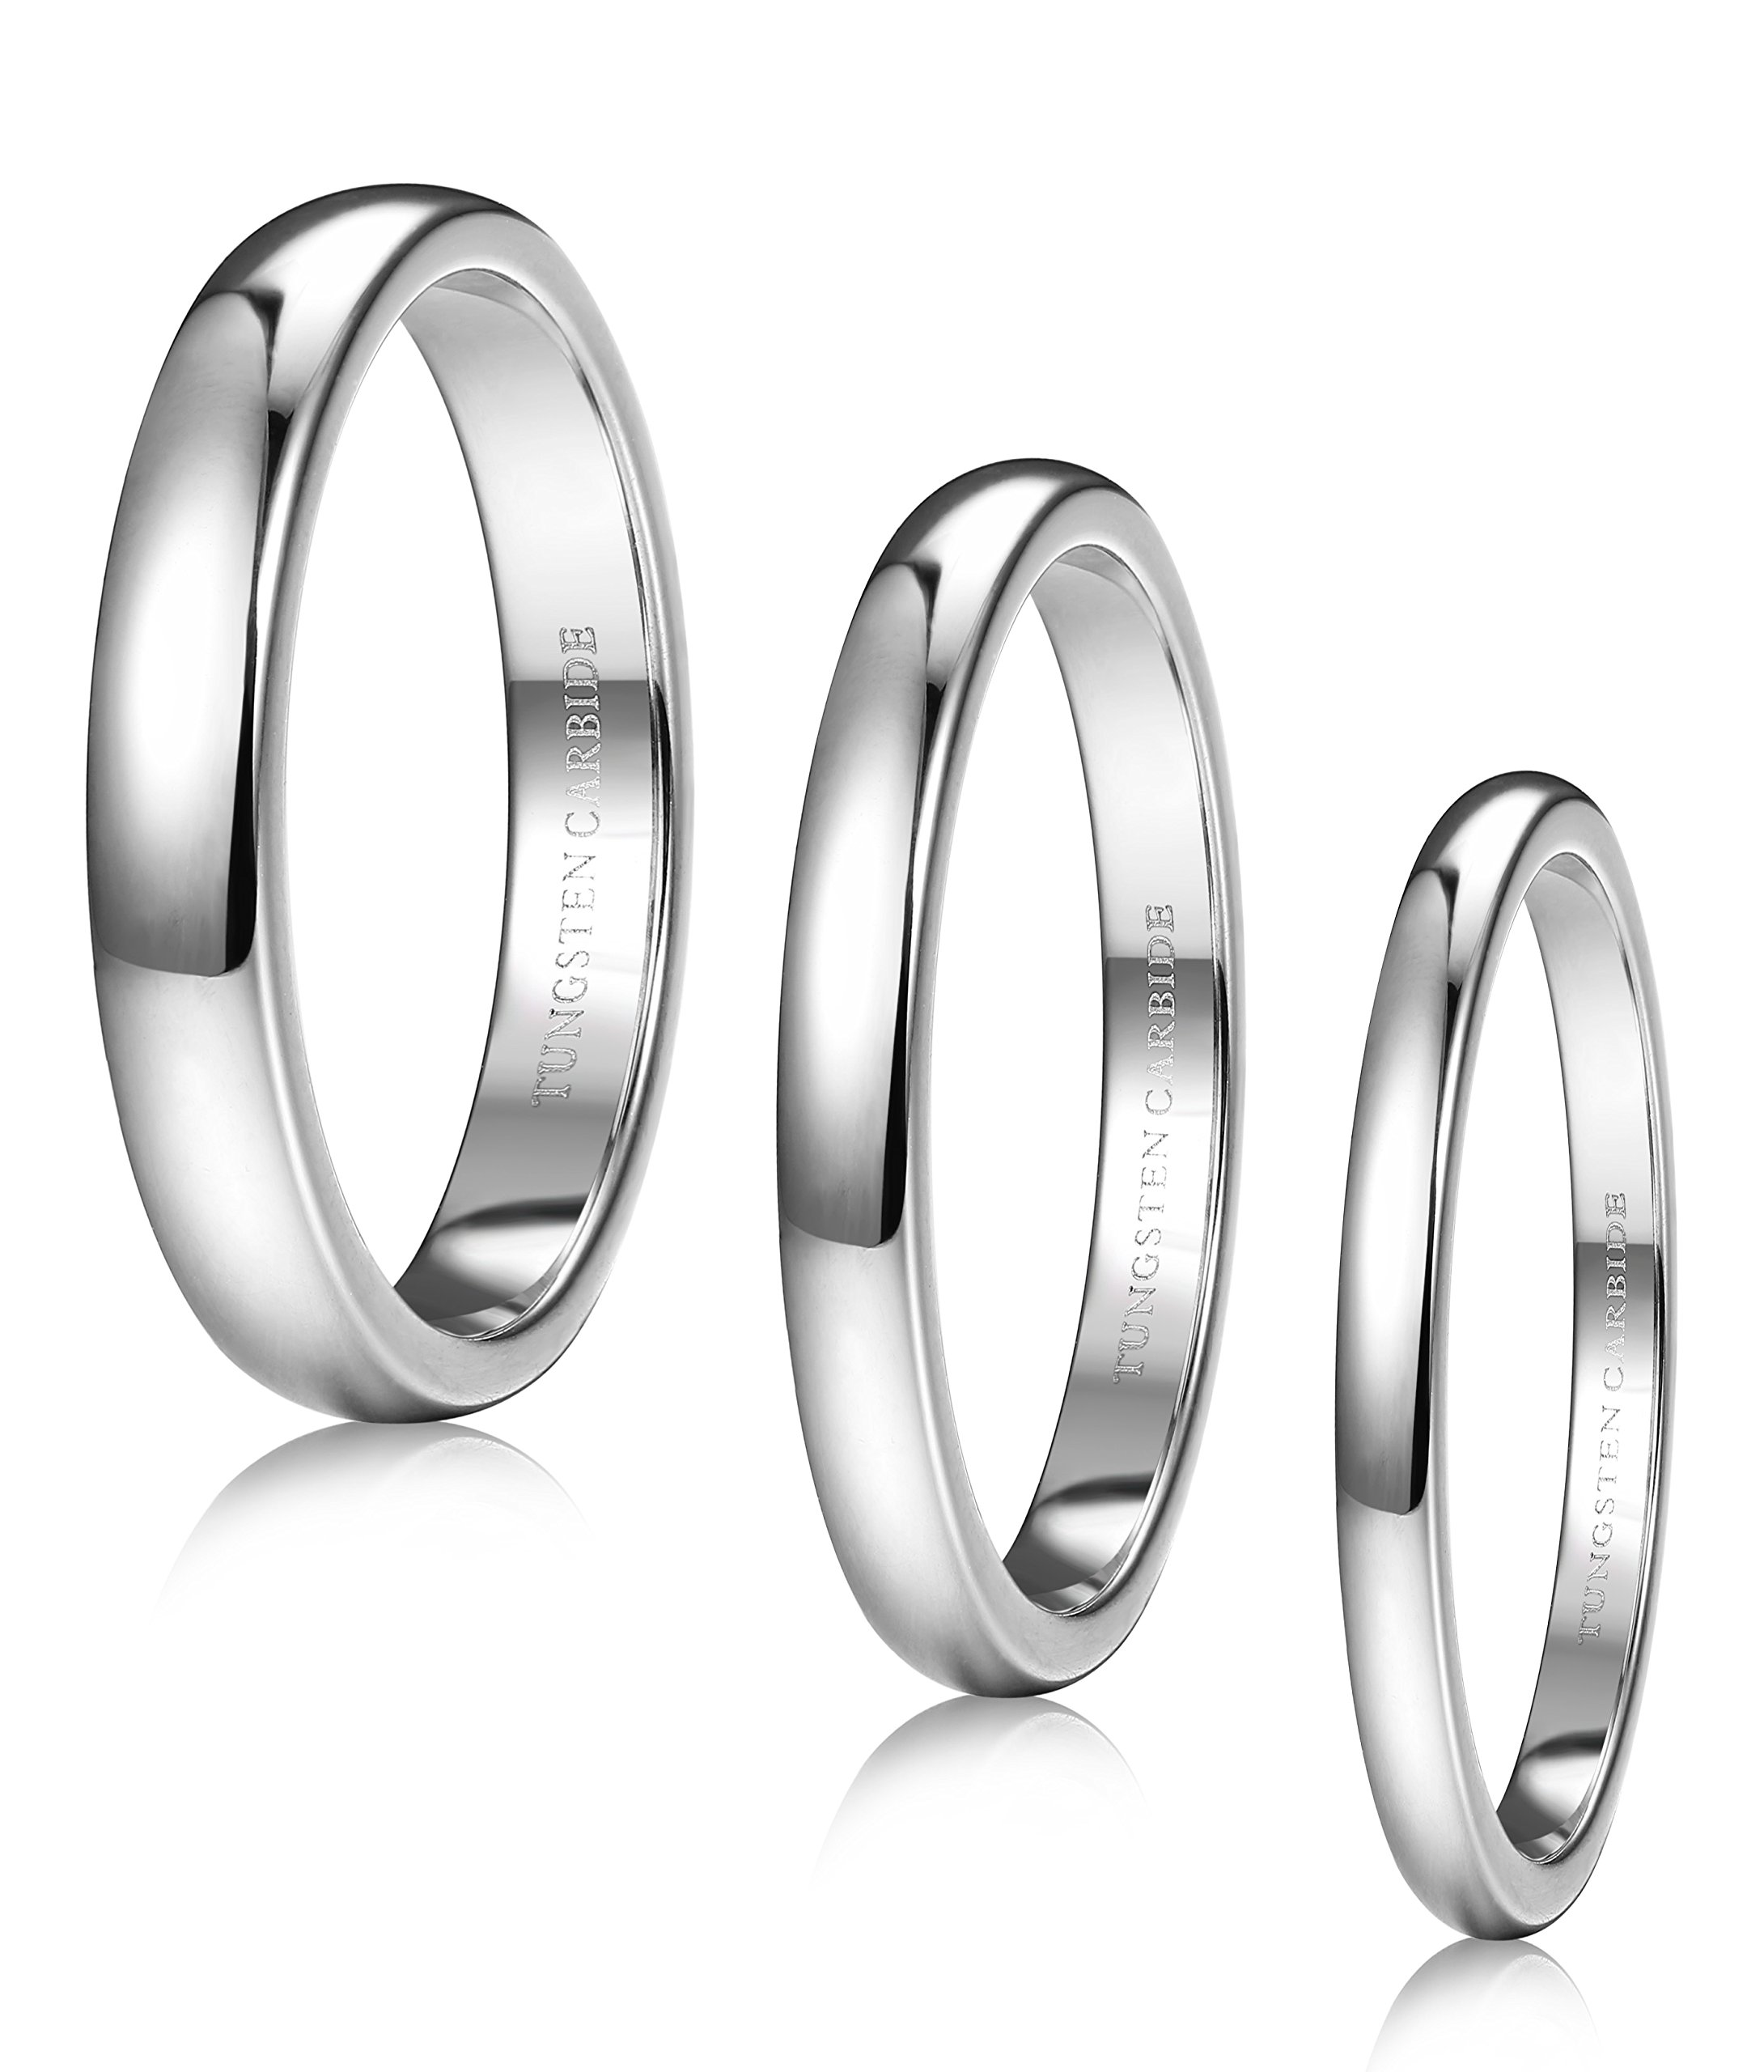 Tungary 3 Pcs Tungsten Carbide Rings for Men Women Wedding Band Engagement Promise Domed 2-4mm Size 5 by Tungary